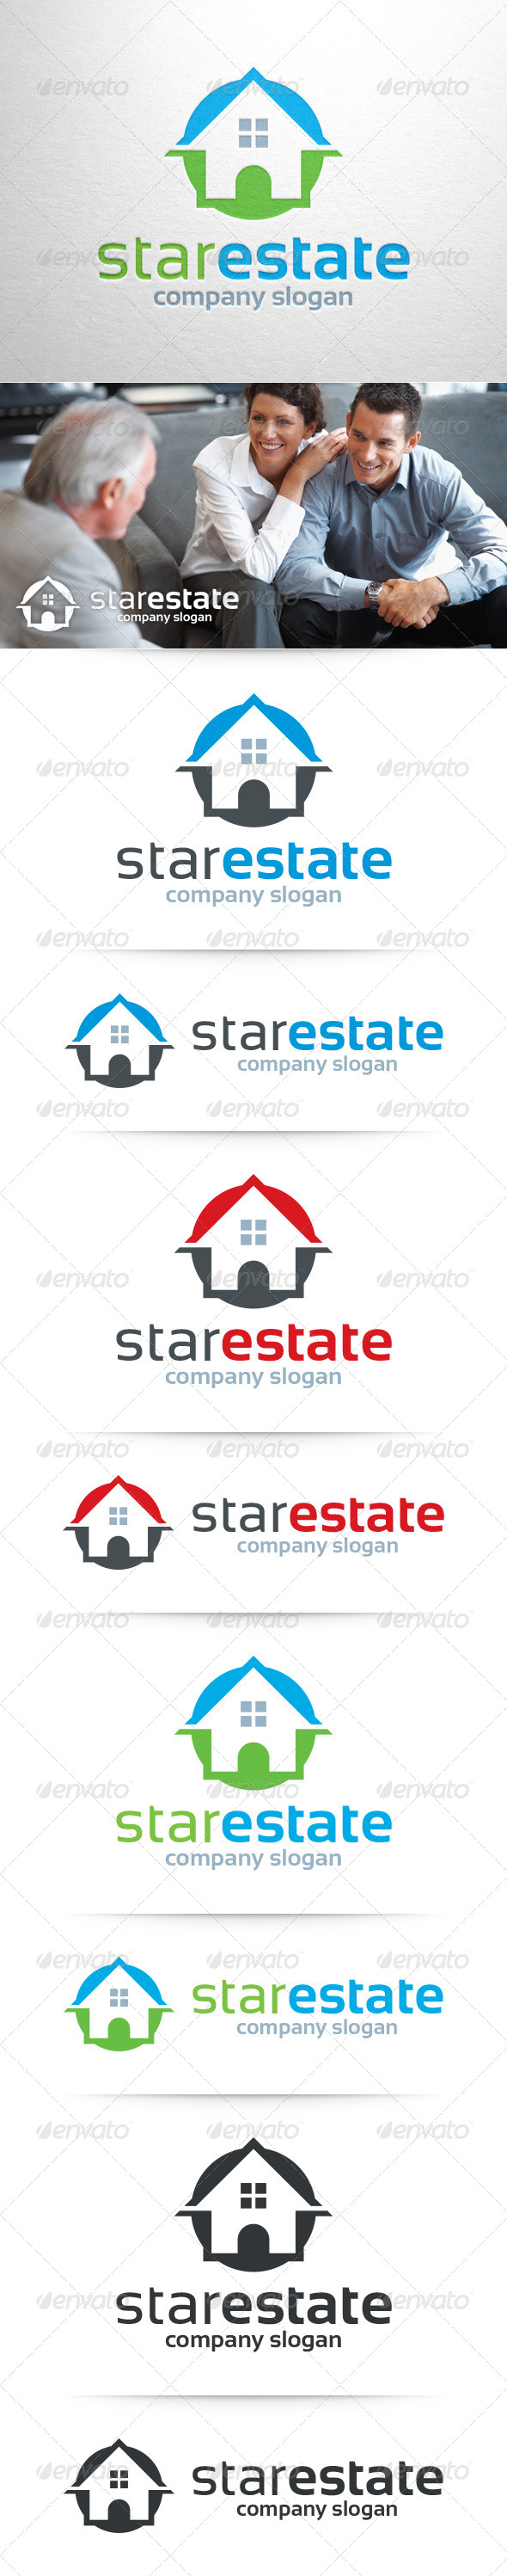 Star Estate Logo Template